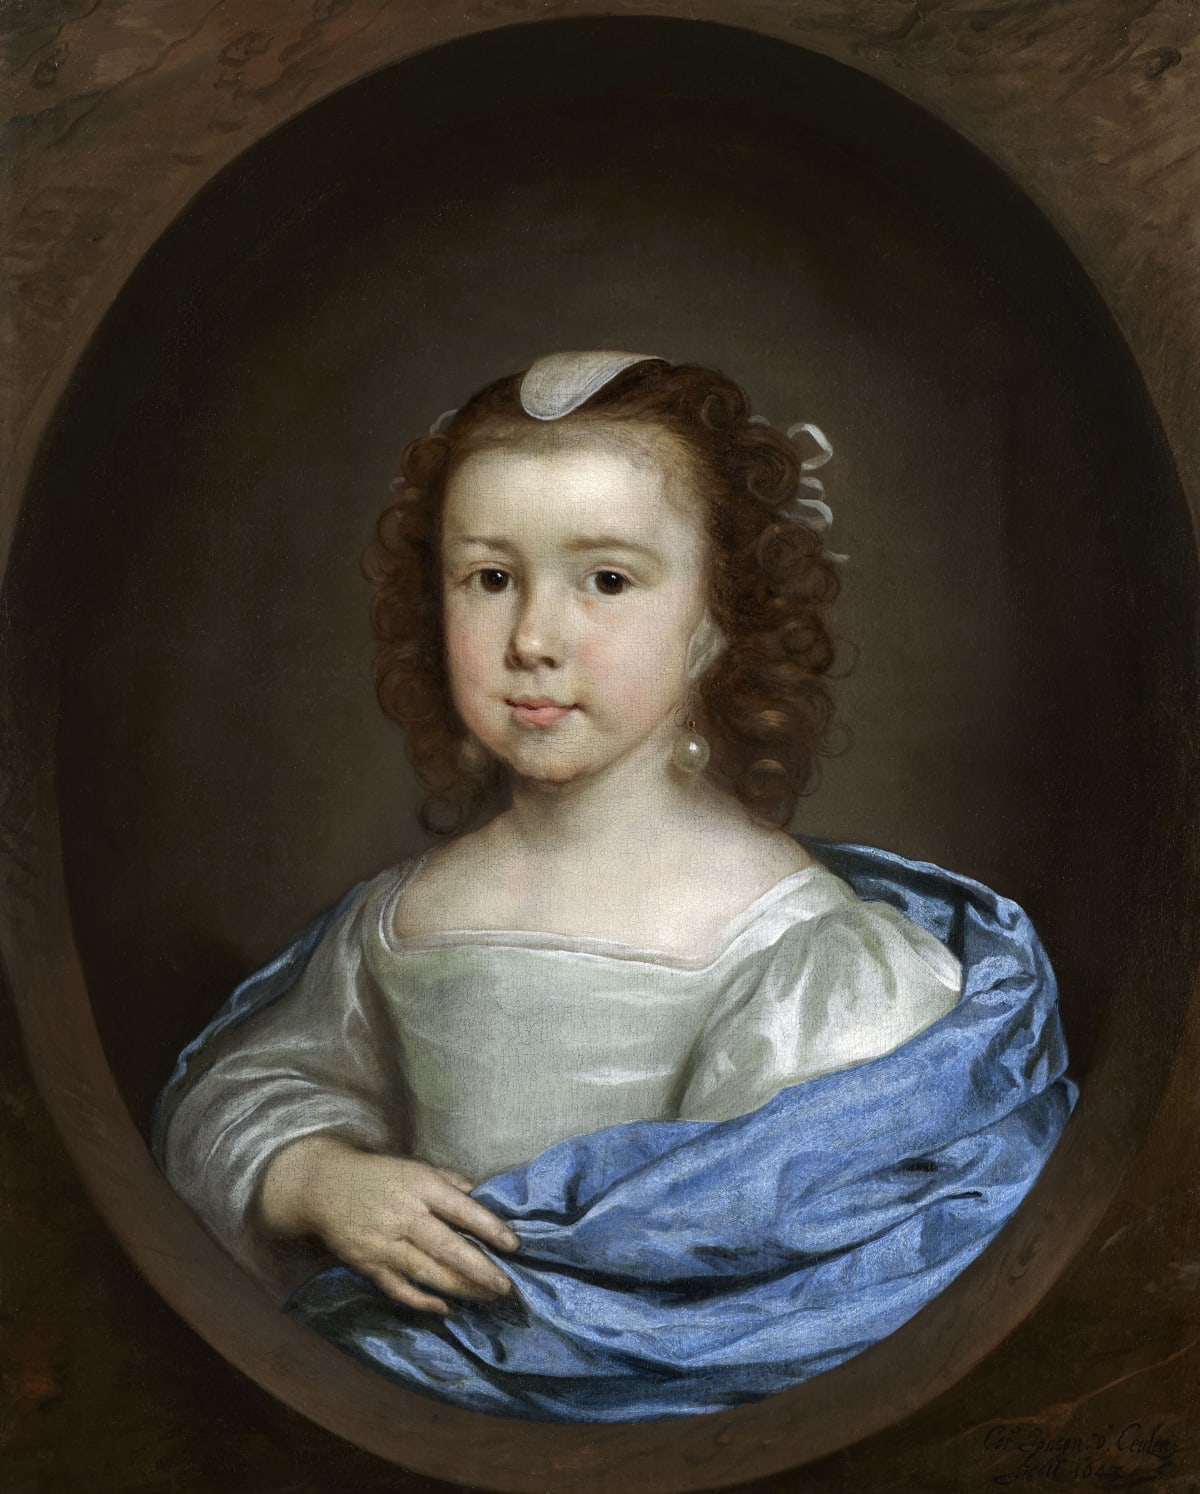 Cornelius Johnson (1593 - 1661) An Unknown Young Dutch Girl, 1643 Oil on canvas 25 ½ x 20 7/8 in. (64.7 x 52.9 cm.)